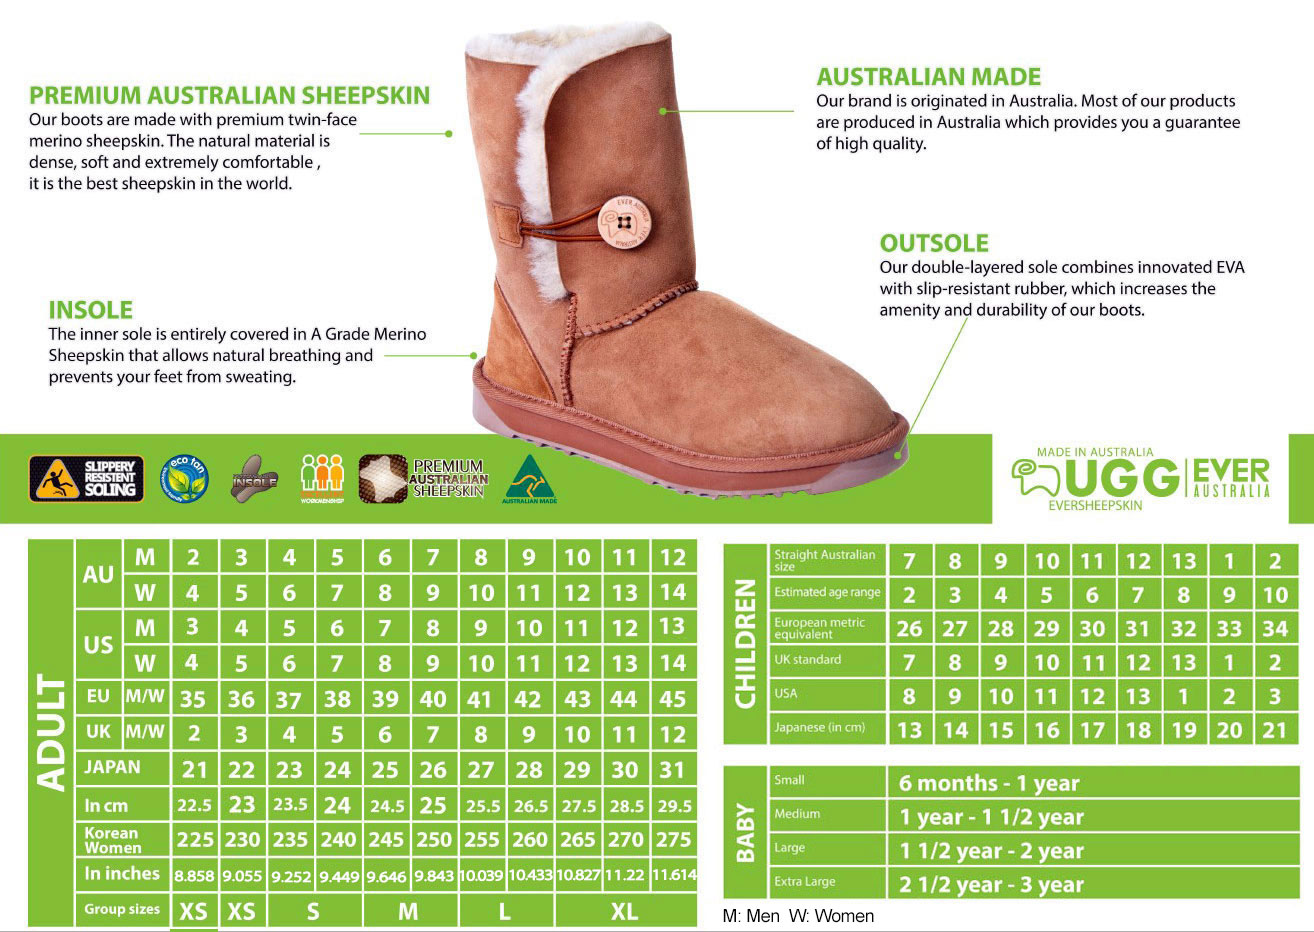 Ugg Boots Size Chart W7 Uggs Size Guide W7 Division Of